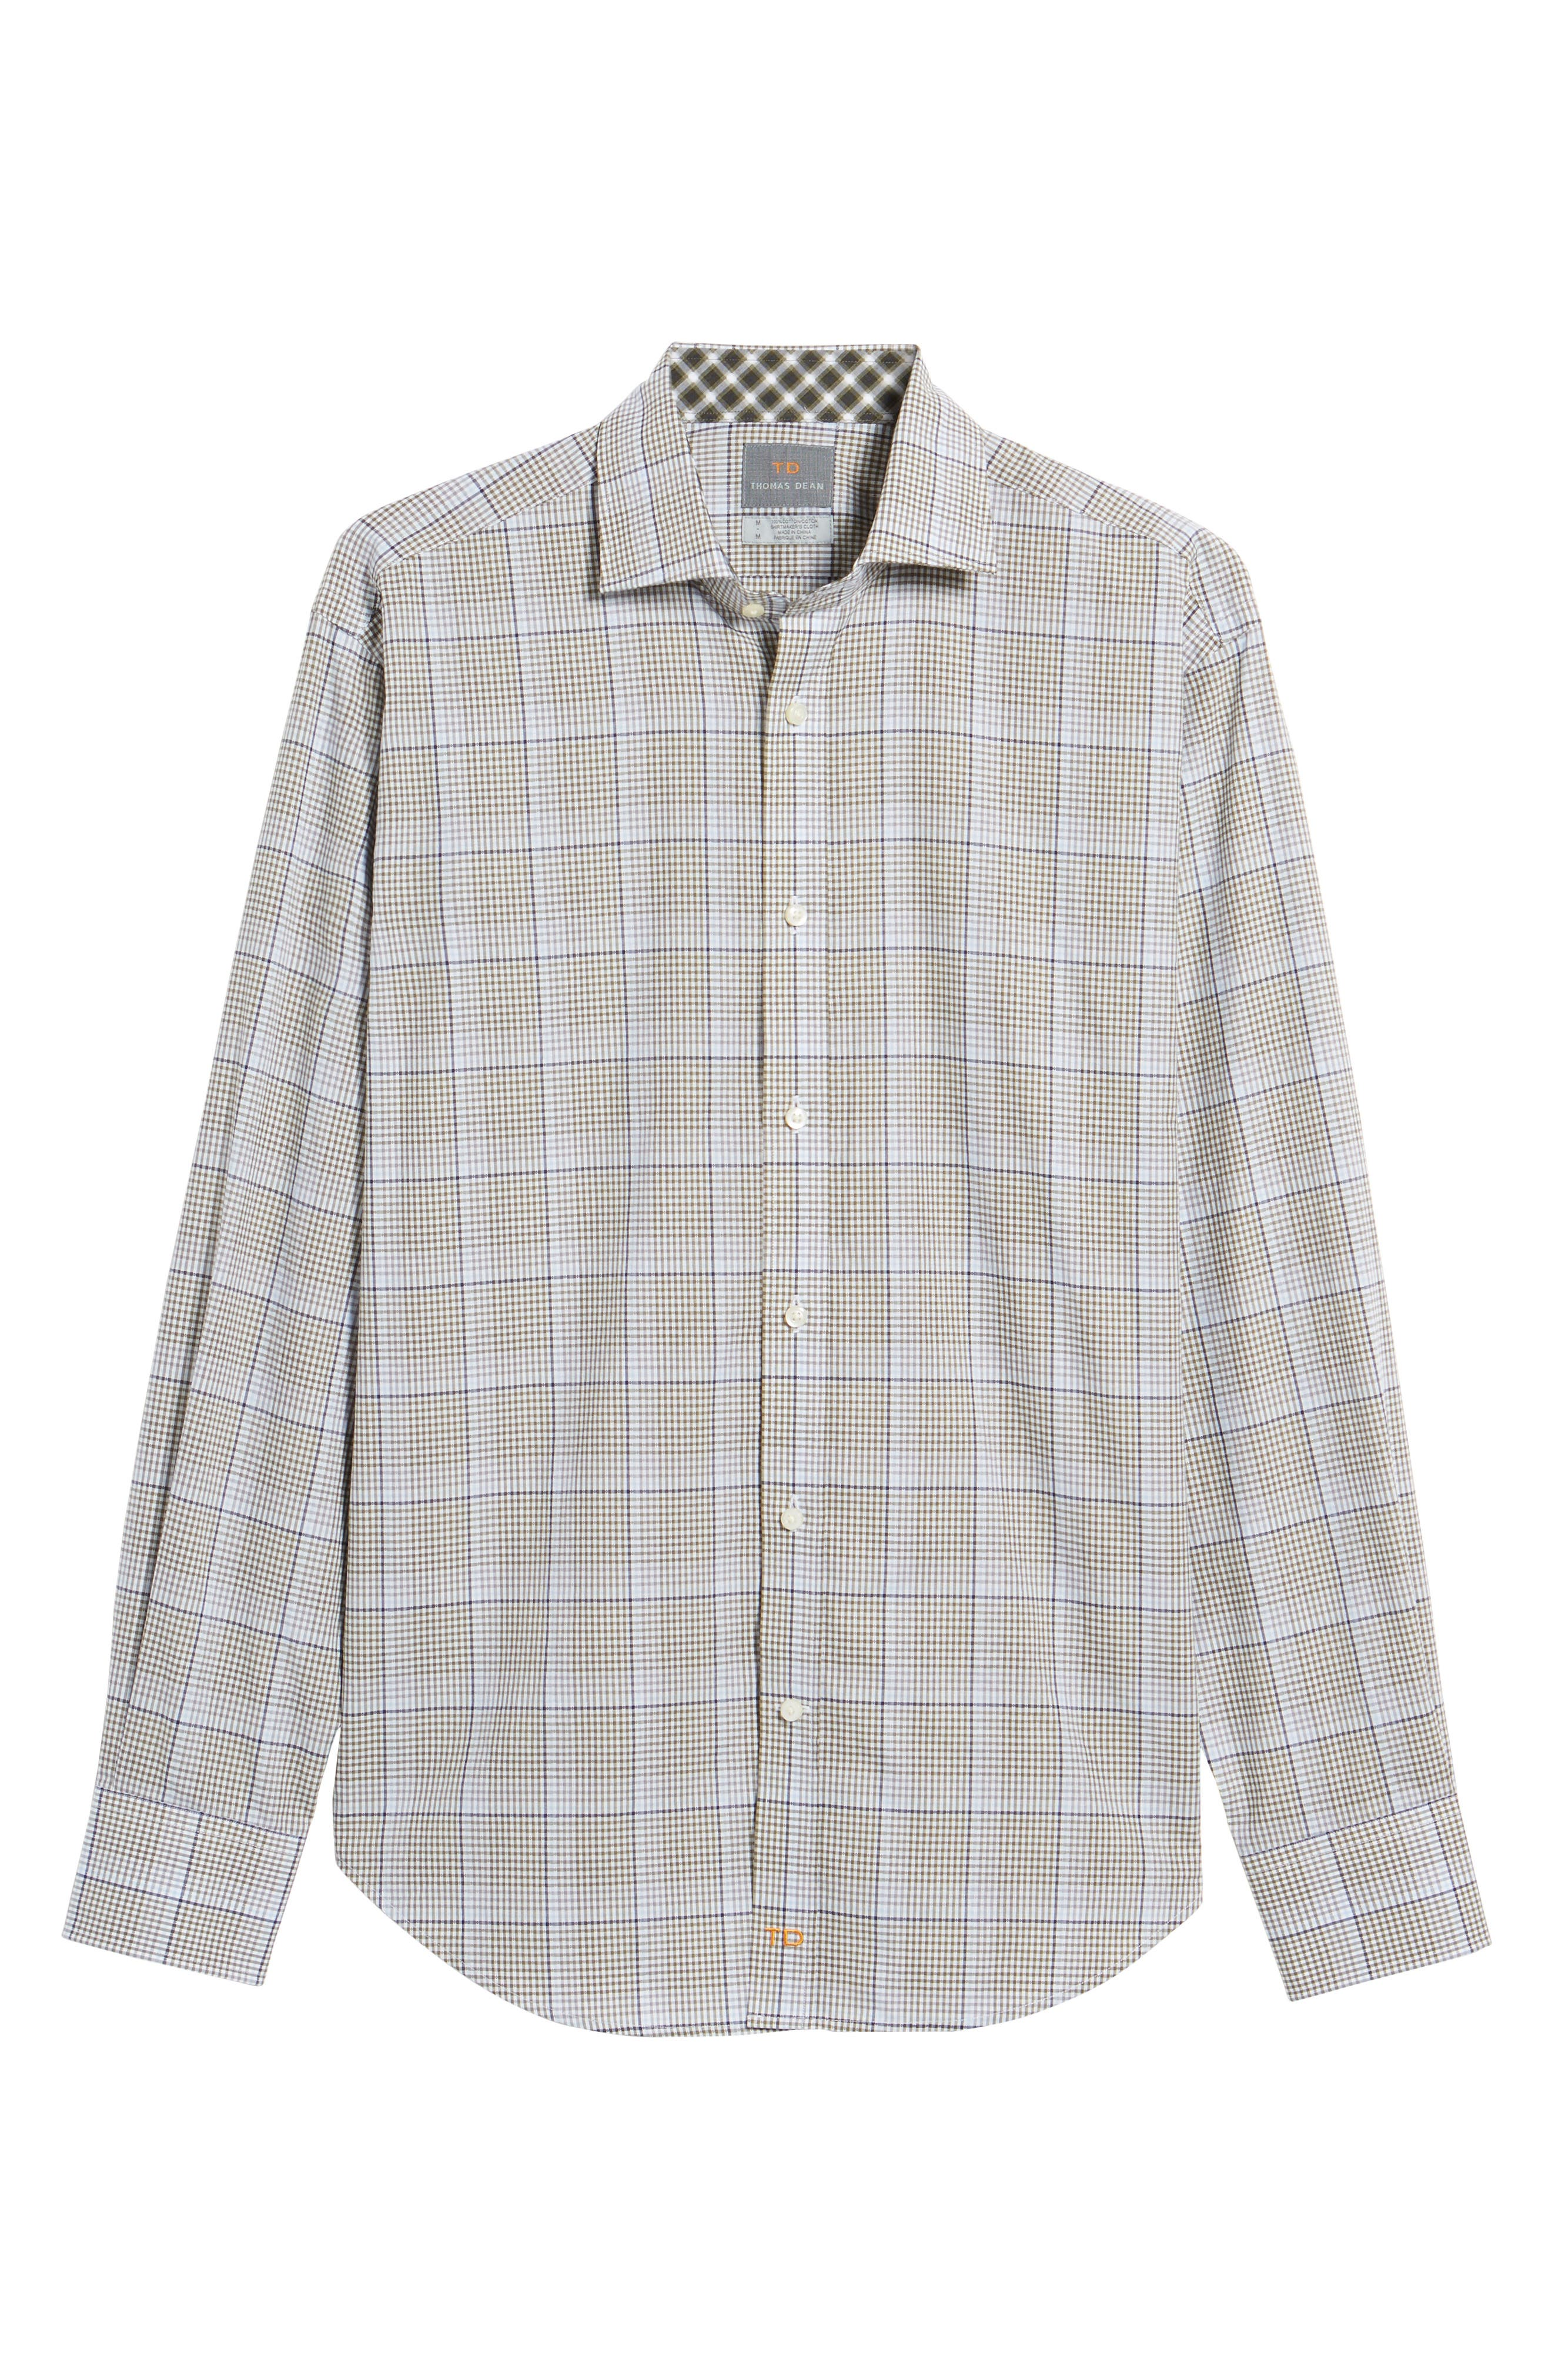 Diamond Regular Fit Dobby Check Sport Shirt,                             Alternate thumbnail 6, color,                             300